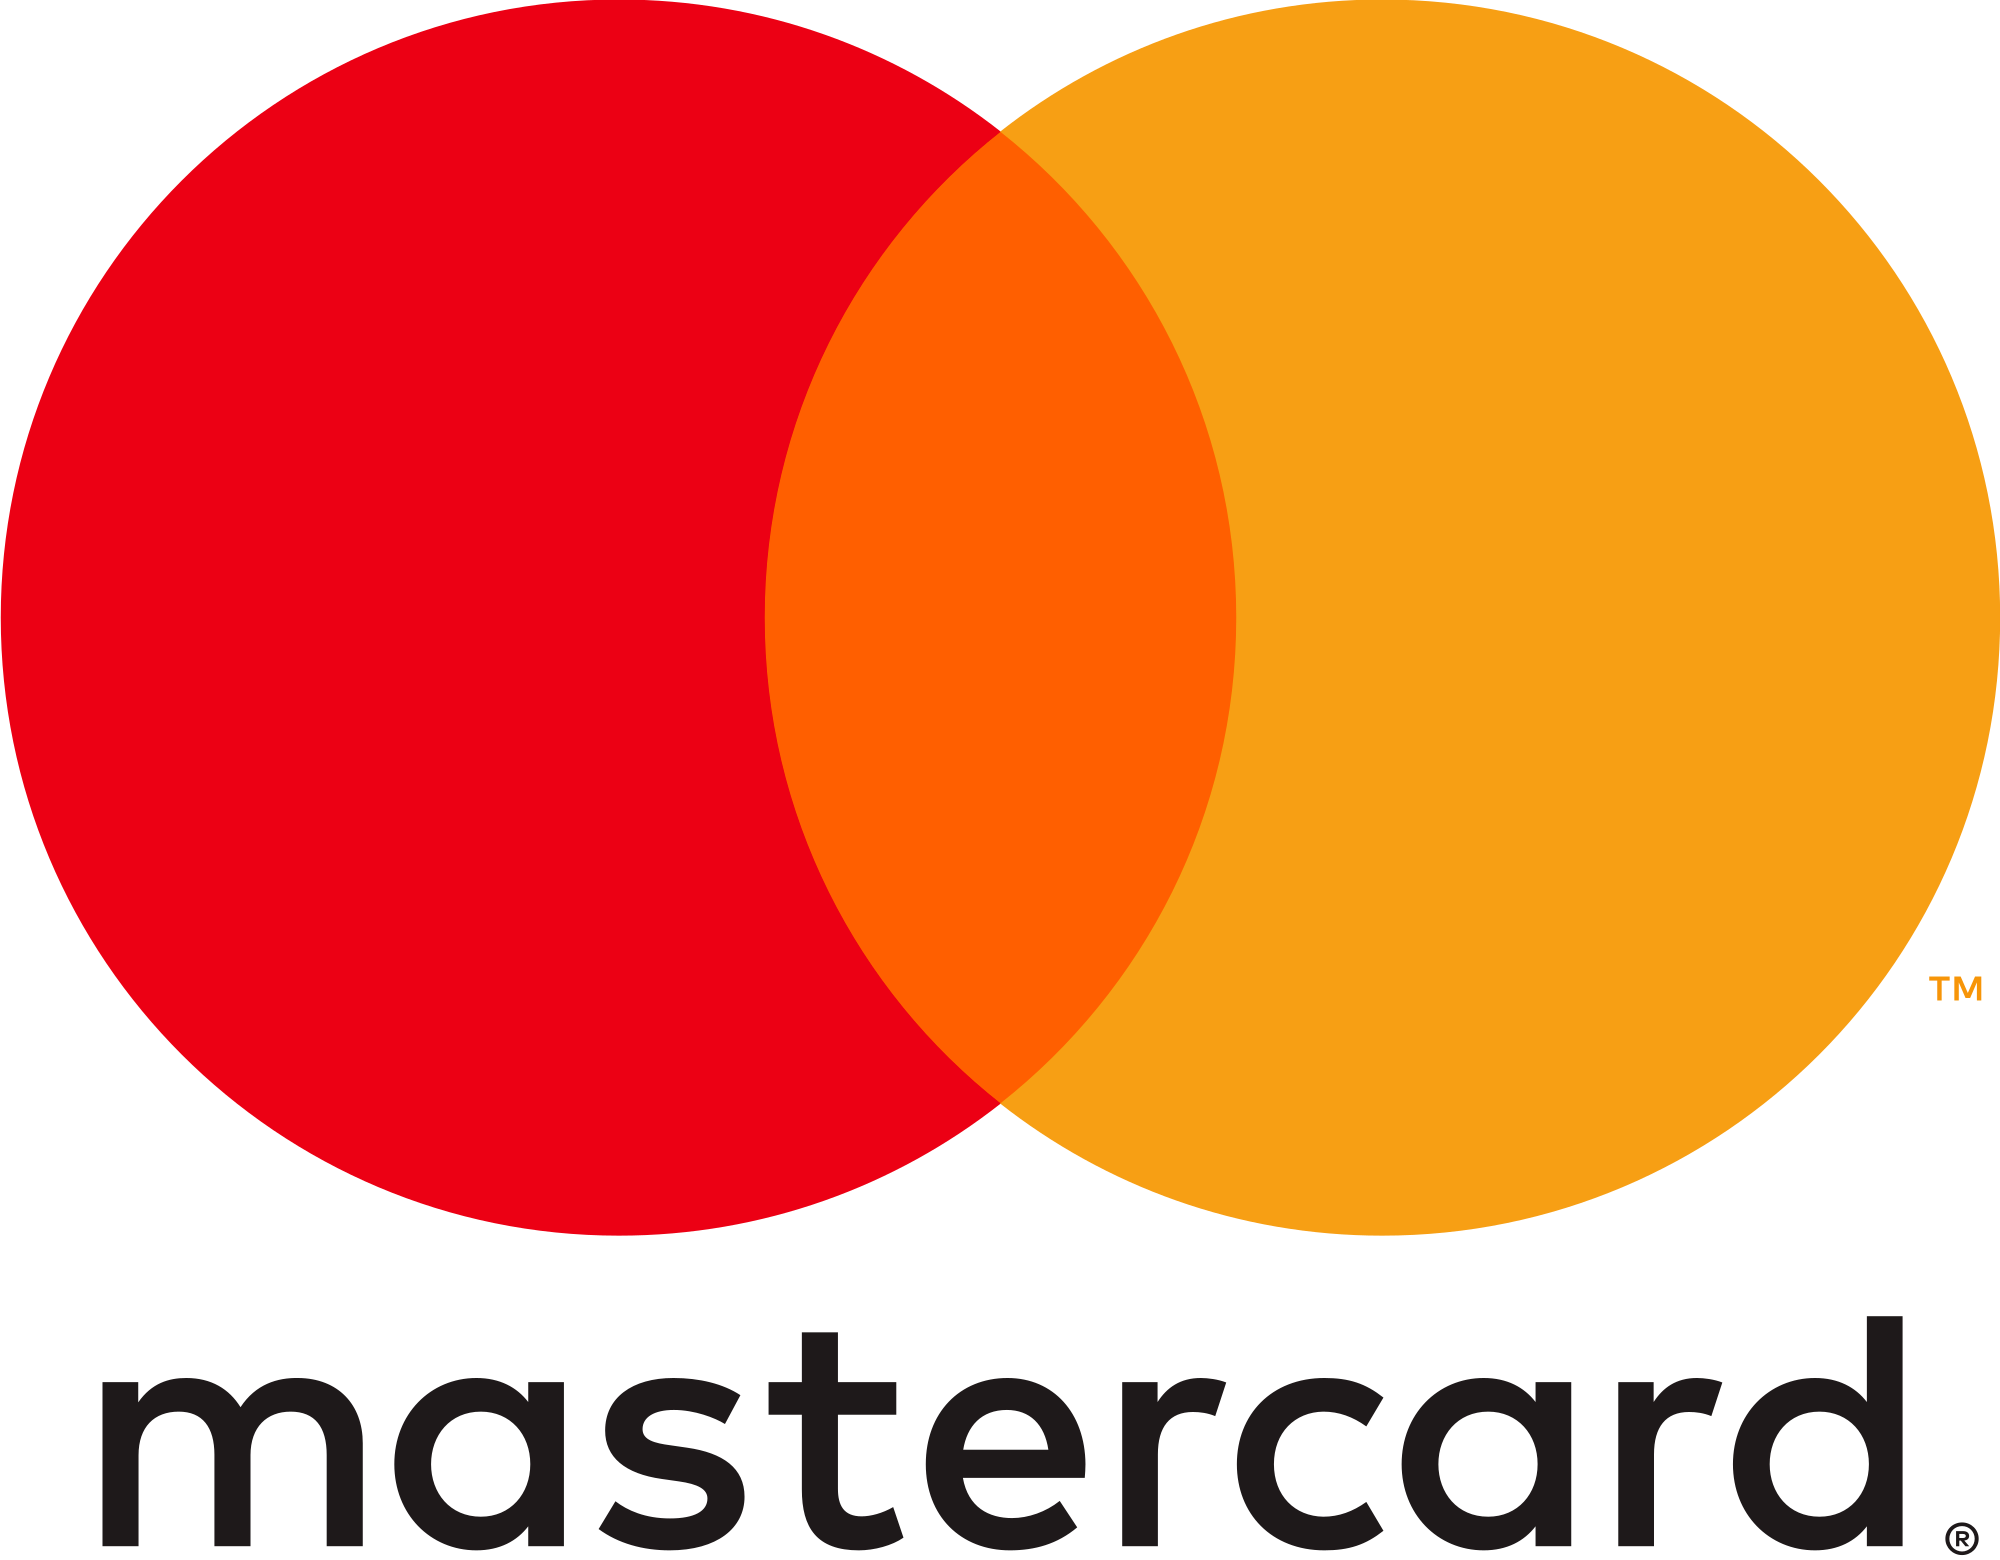 Cindy Chastain, Mastercard, SVP, Group Head, Customer Experience and Design